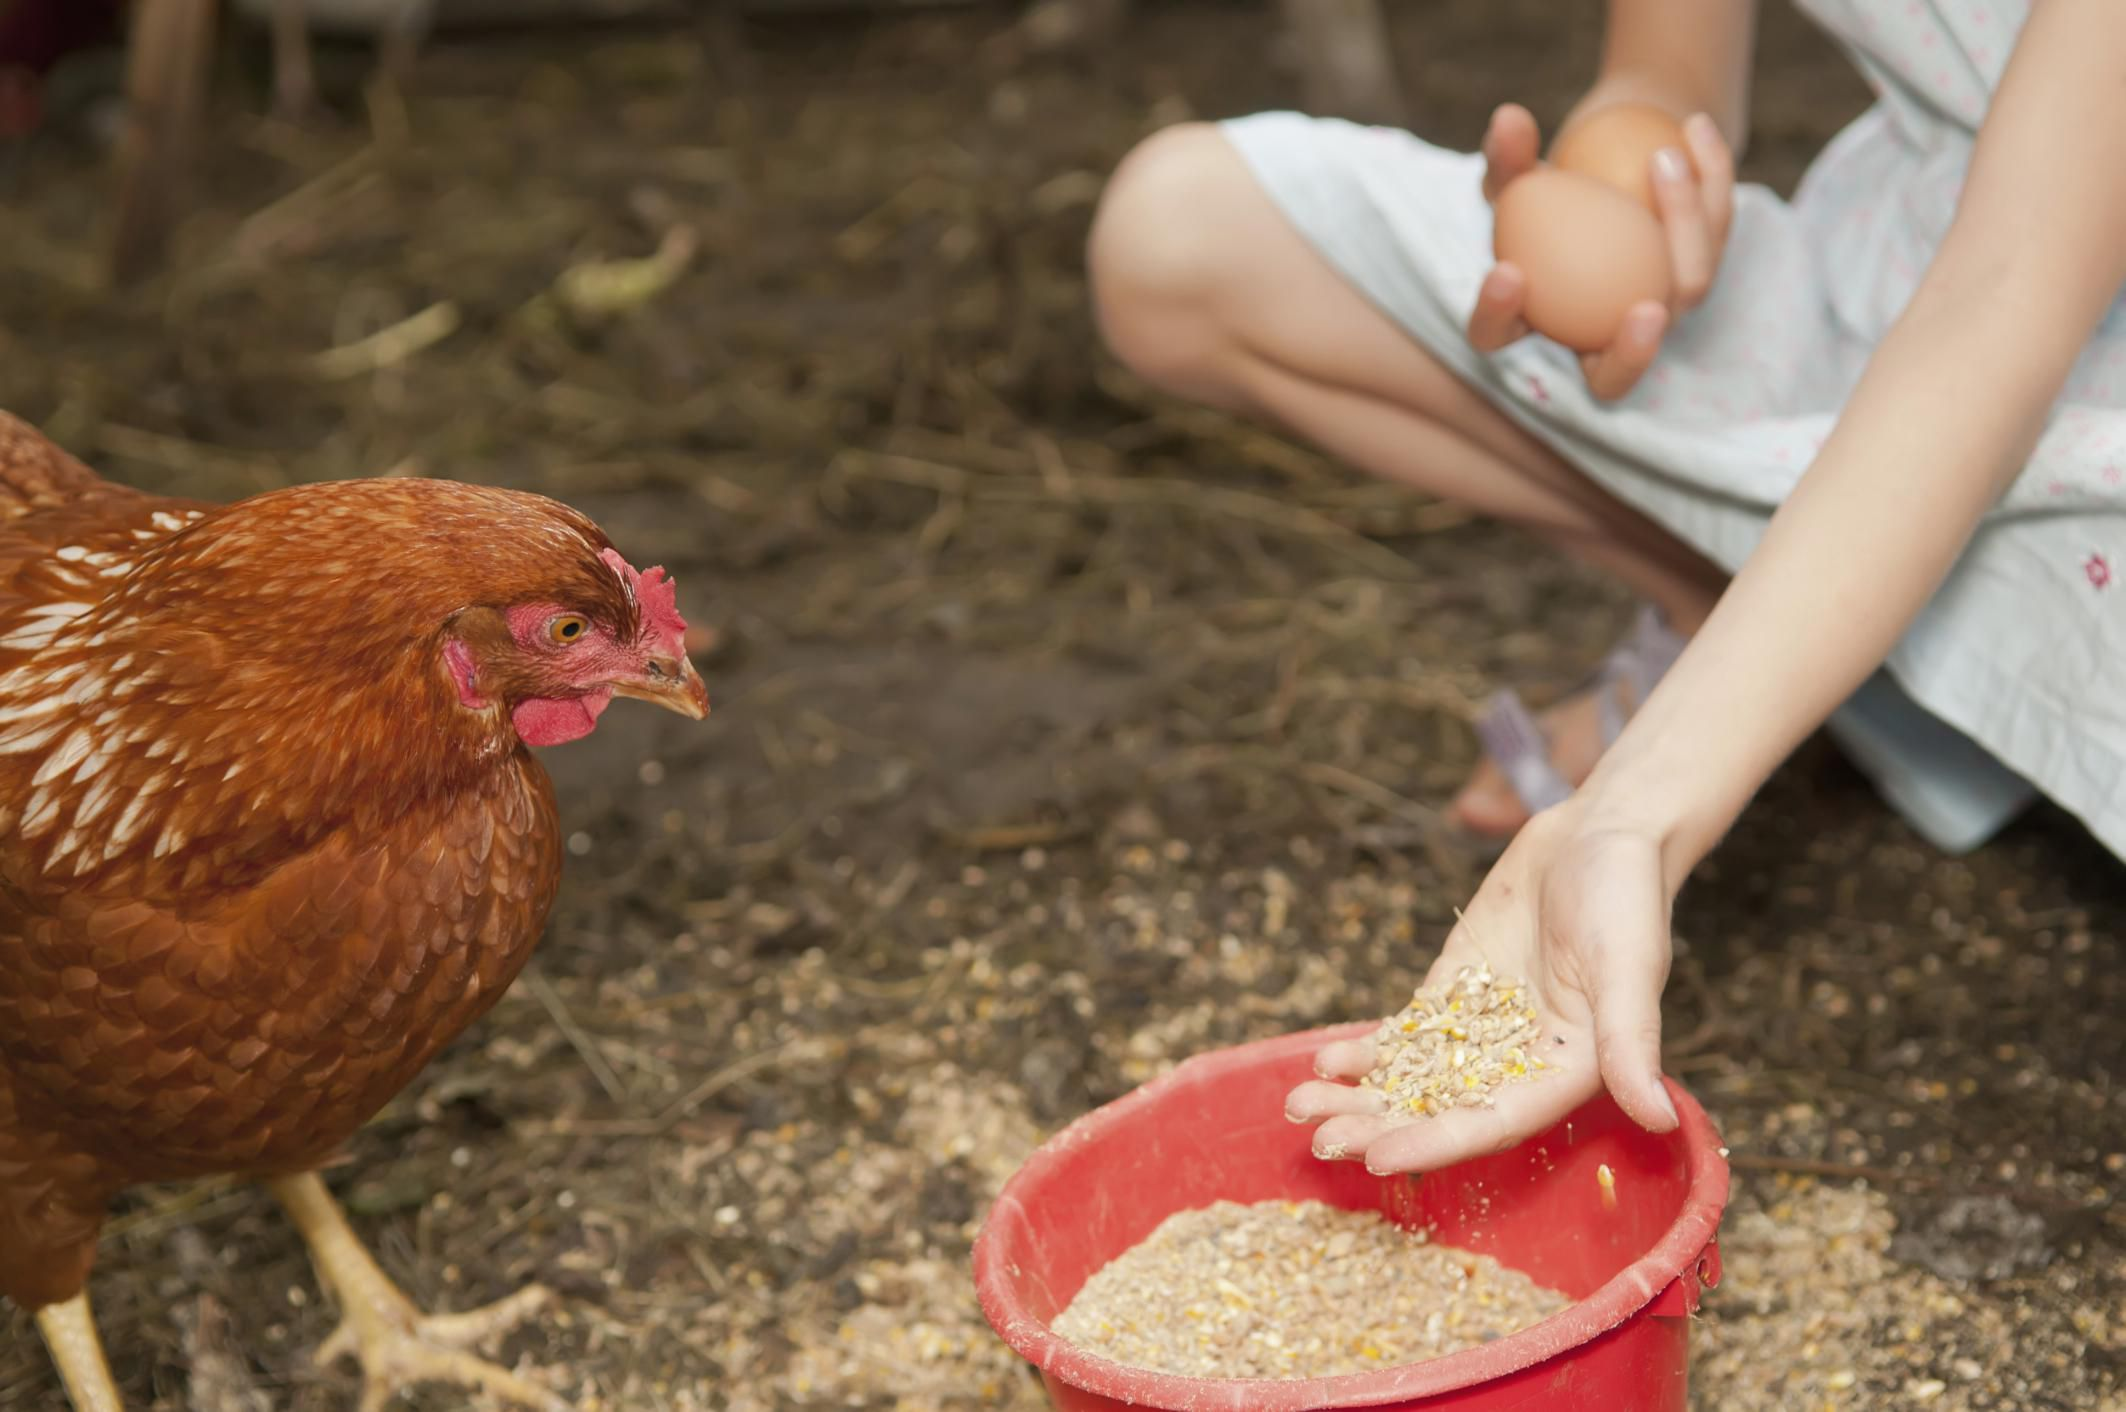 where to buy baby chickens and other poultry online